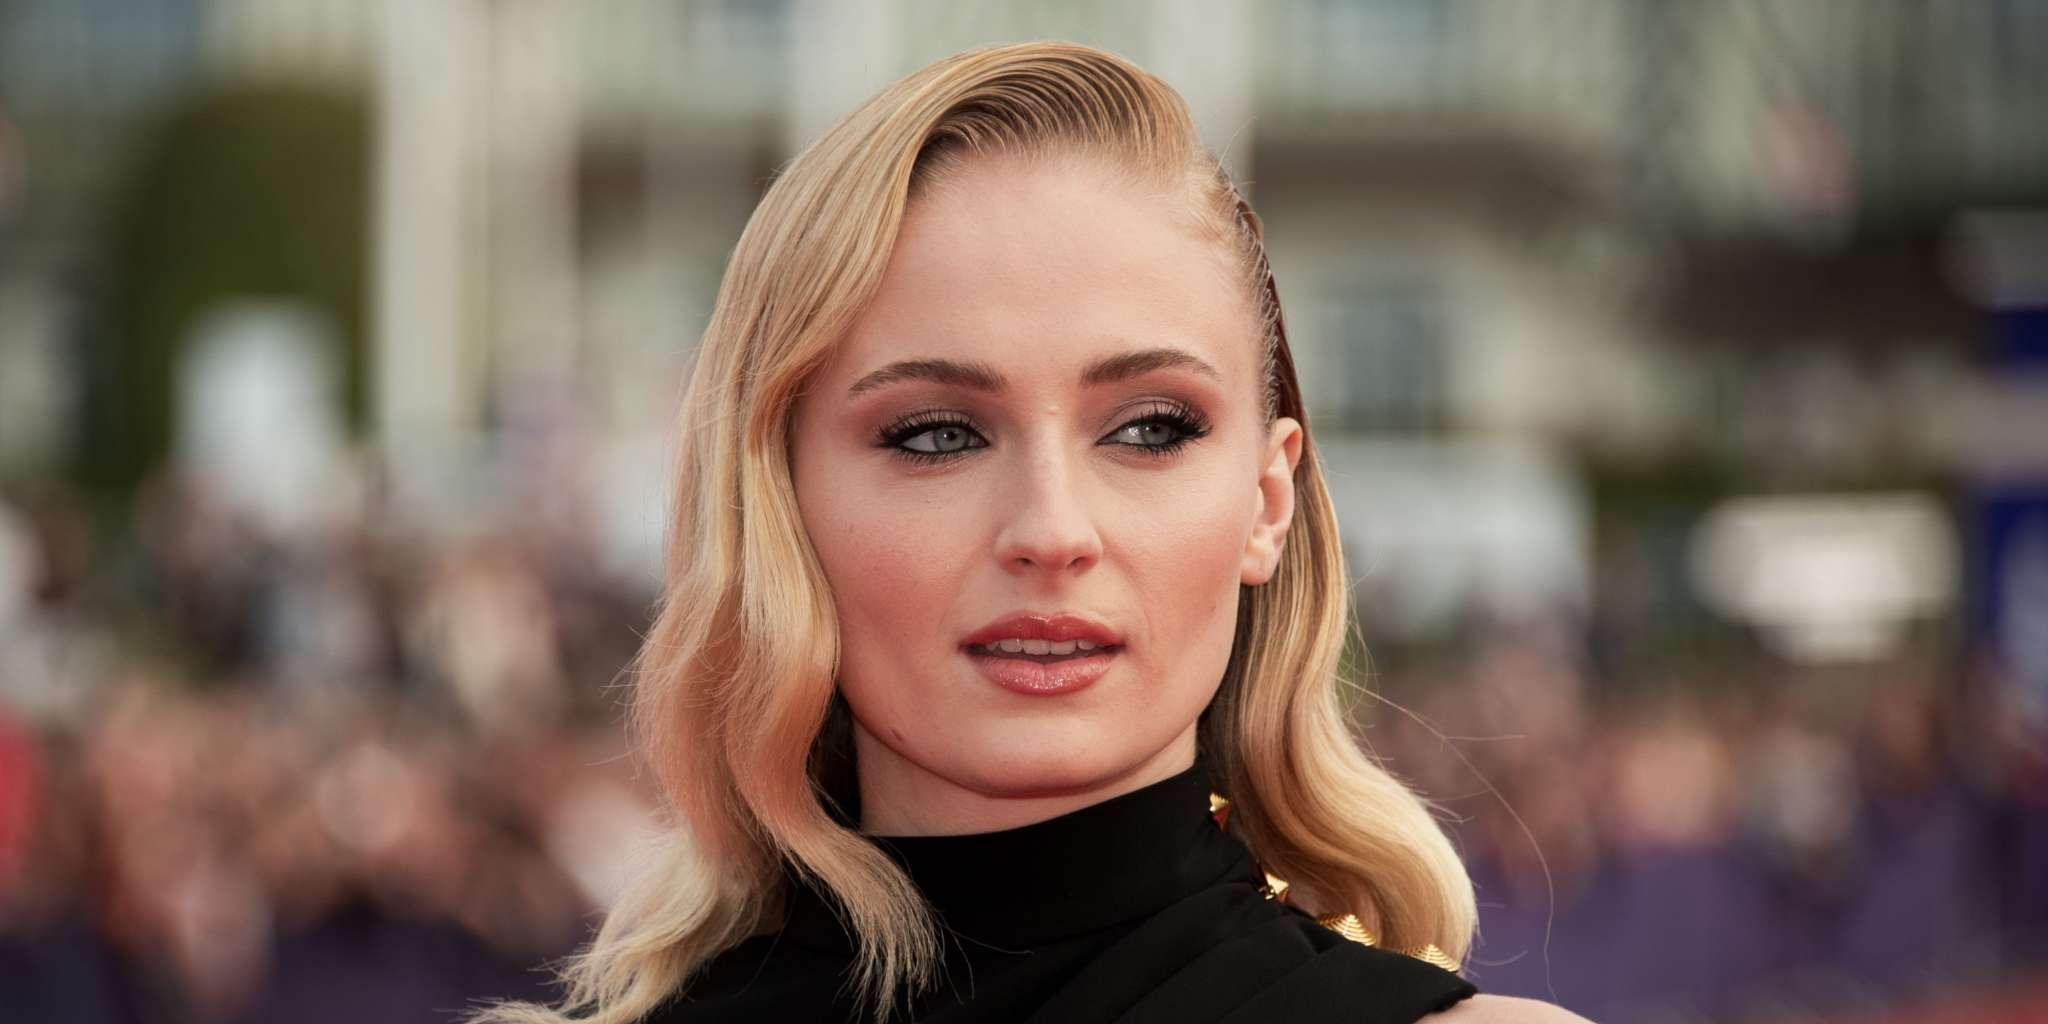 Sophie Turner Slams 'Moron' Donald Trump - Begs People Not To Ingest Or Inject Bleach To Beat COVID-19 After The President Suggests It!